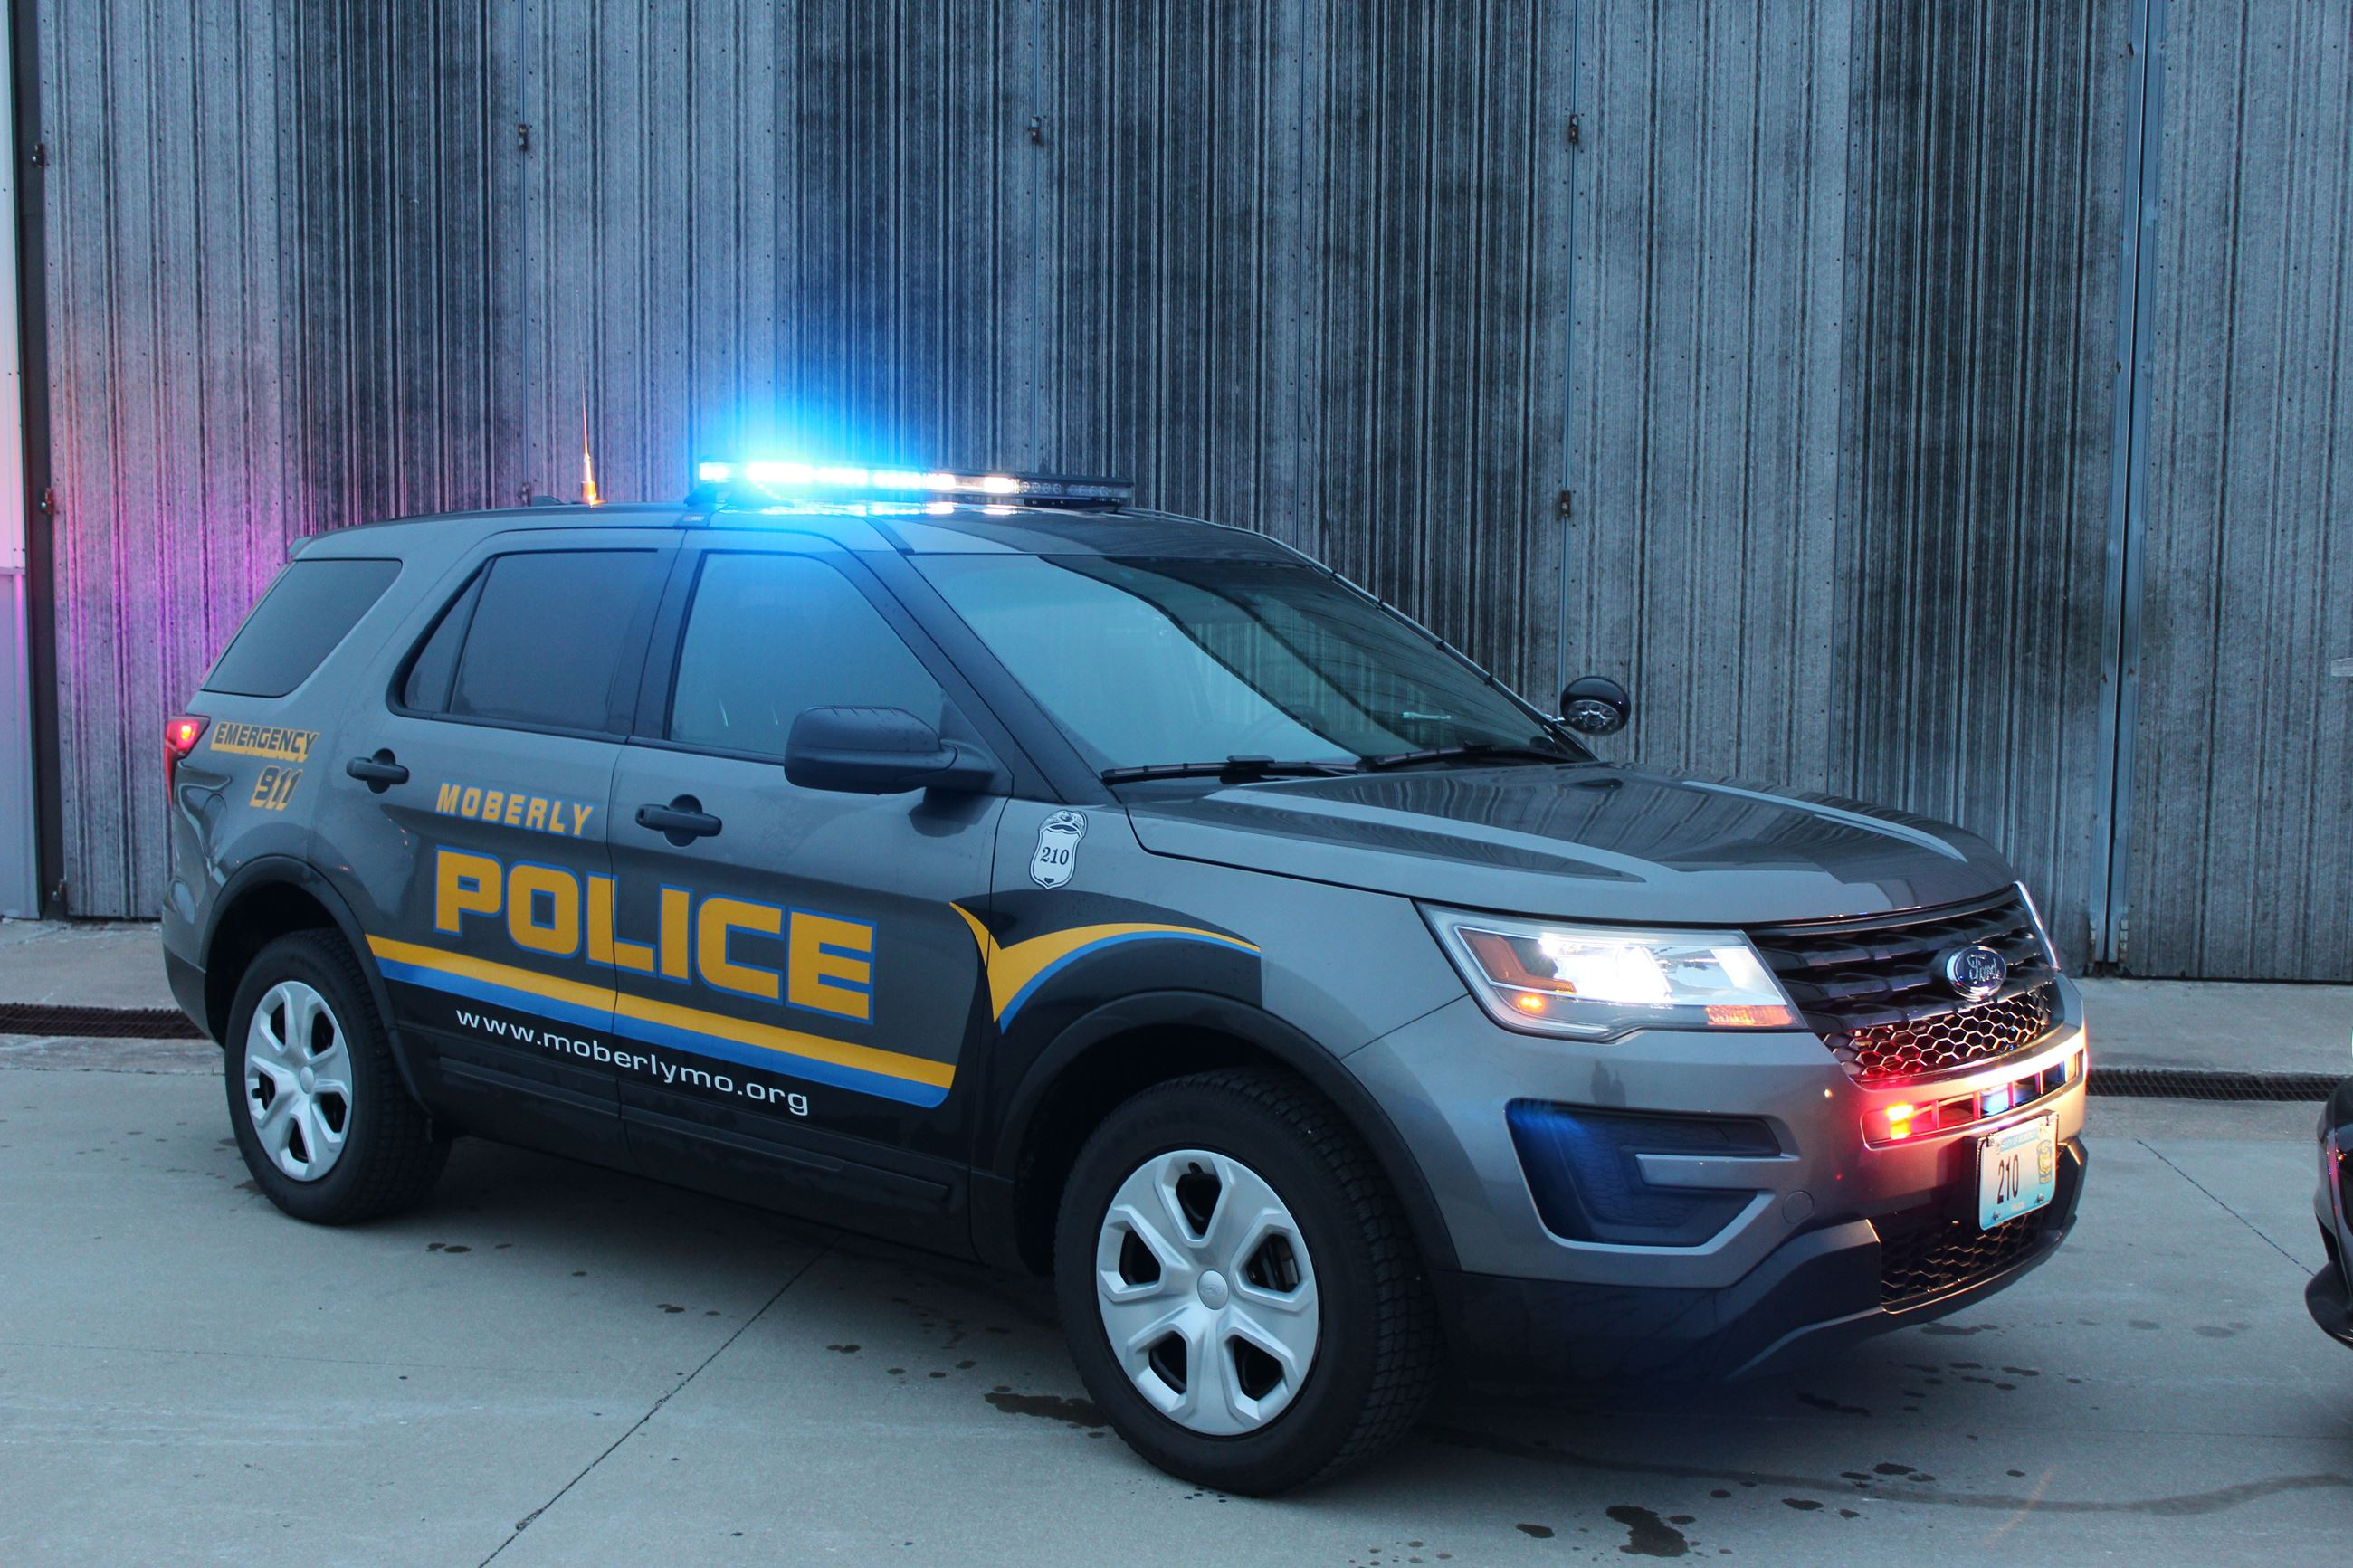 Image of Moberly Patrol SUV